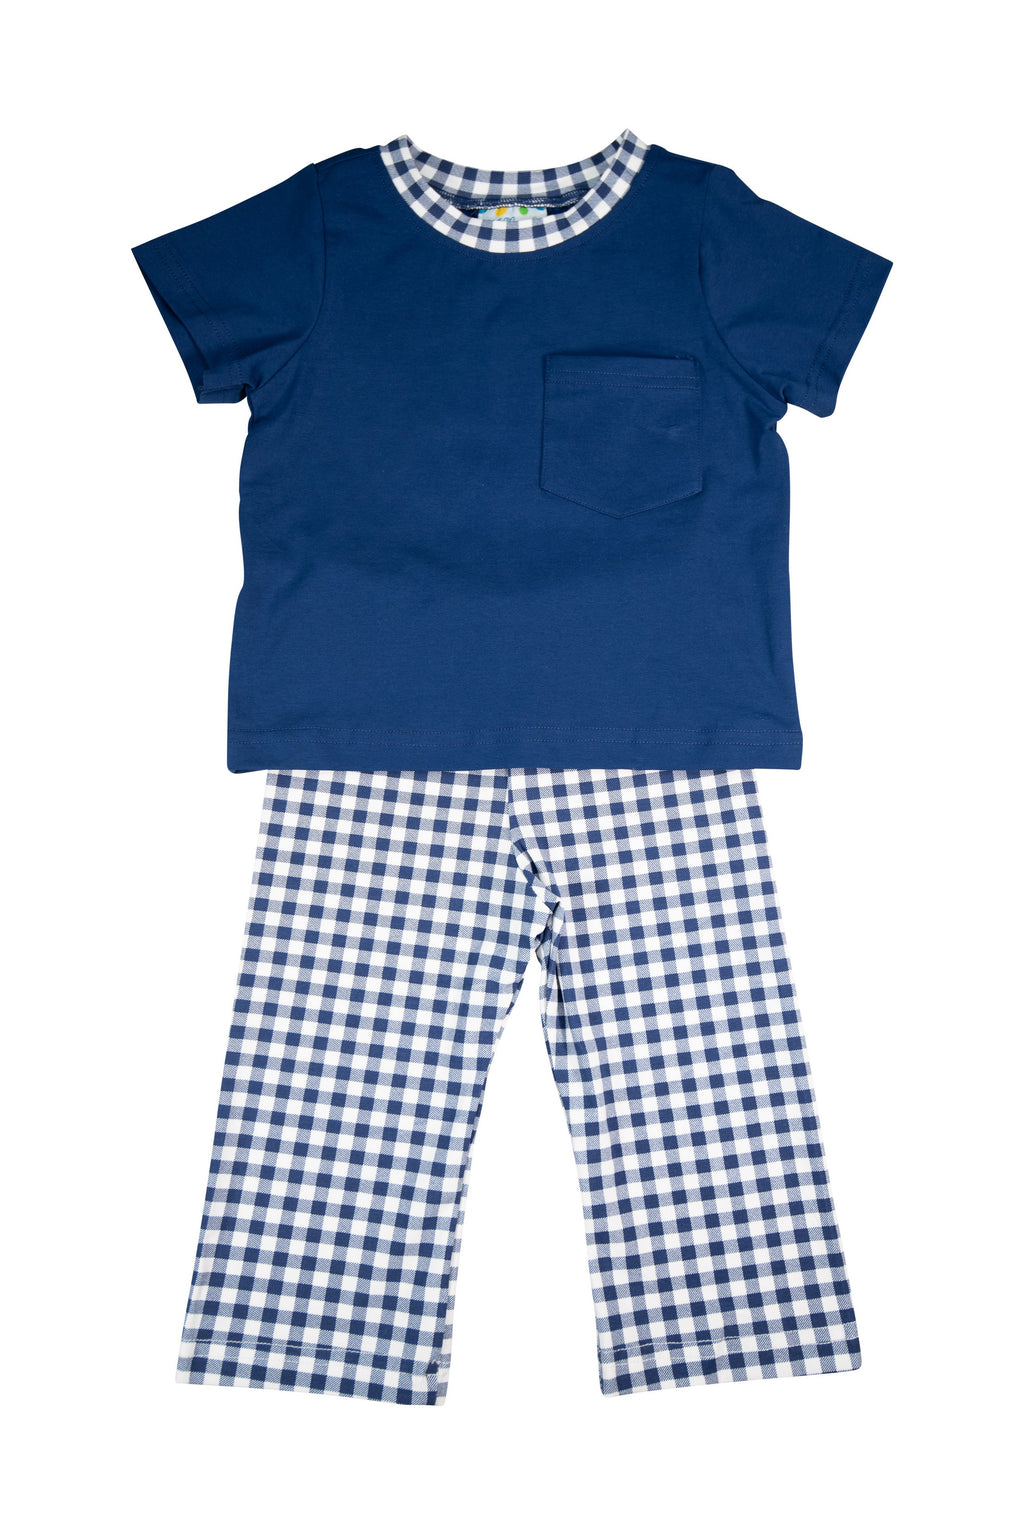 Boys Simply Knit Navy Pants Set